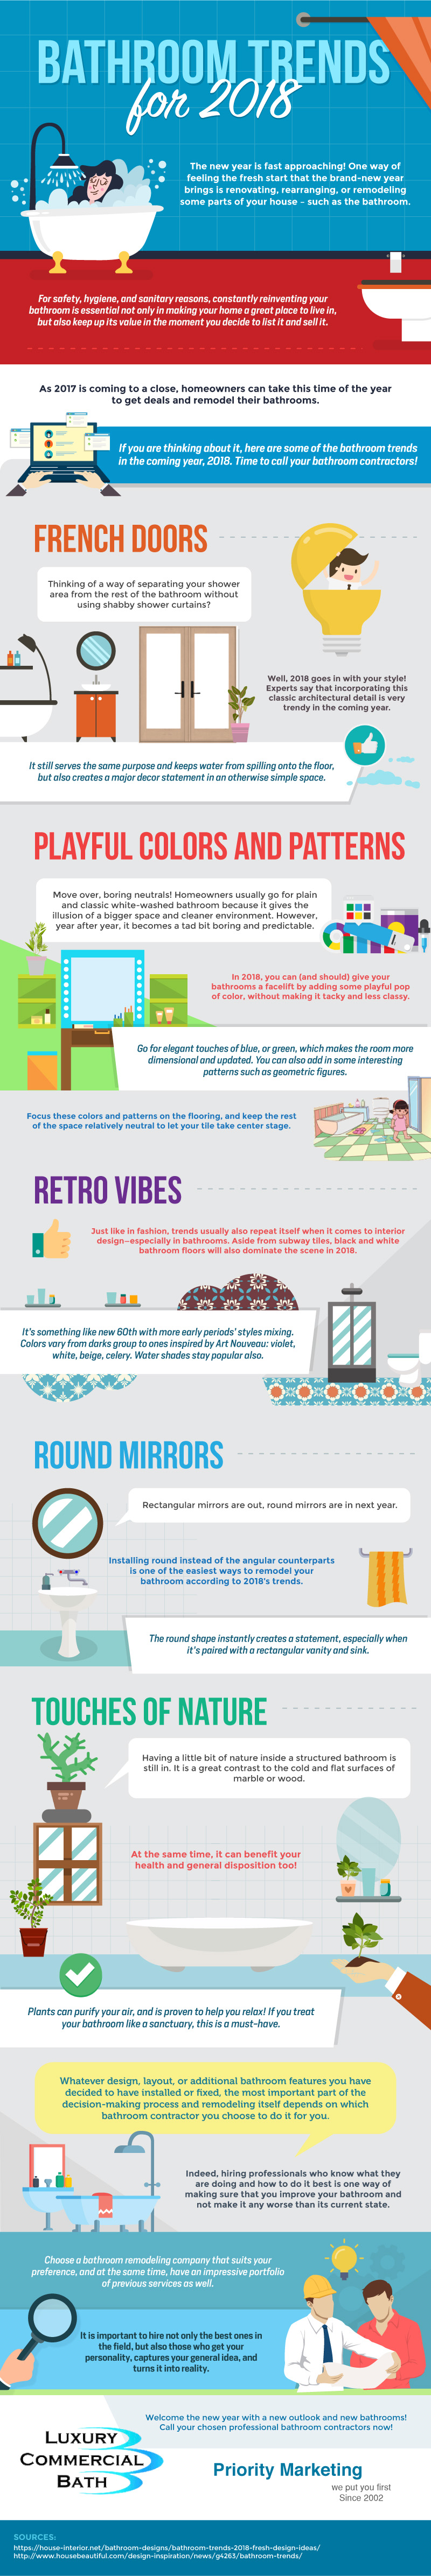 Bathroom Trends for 2018 [Infographic]